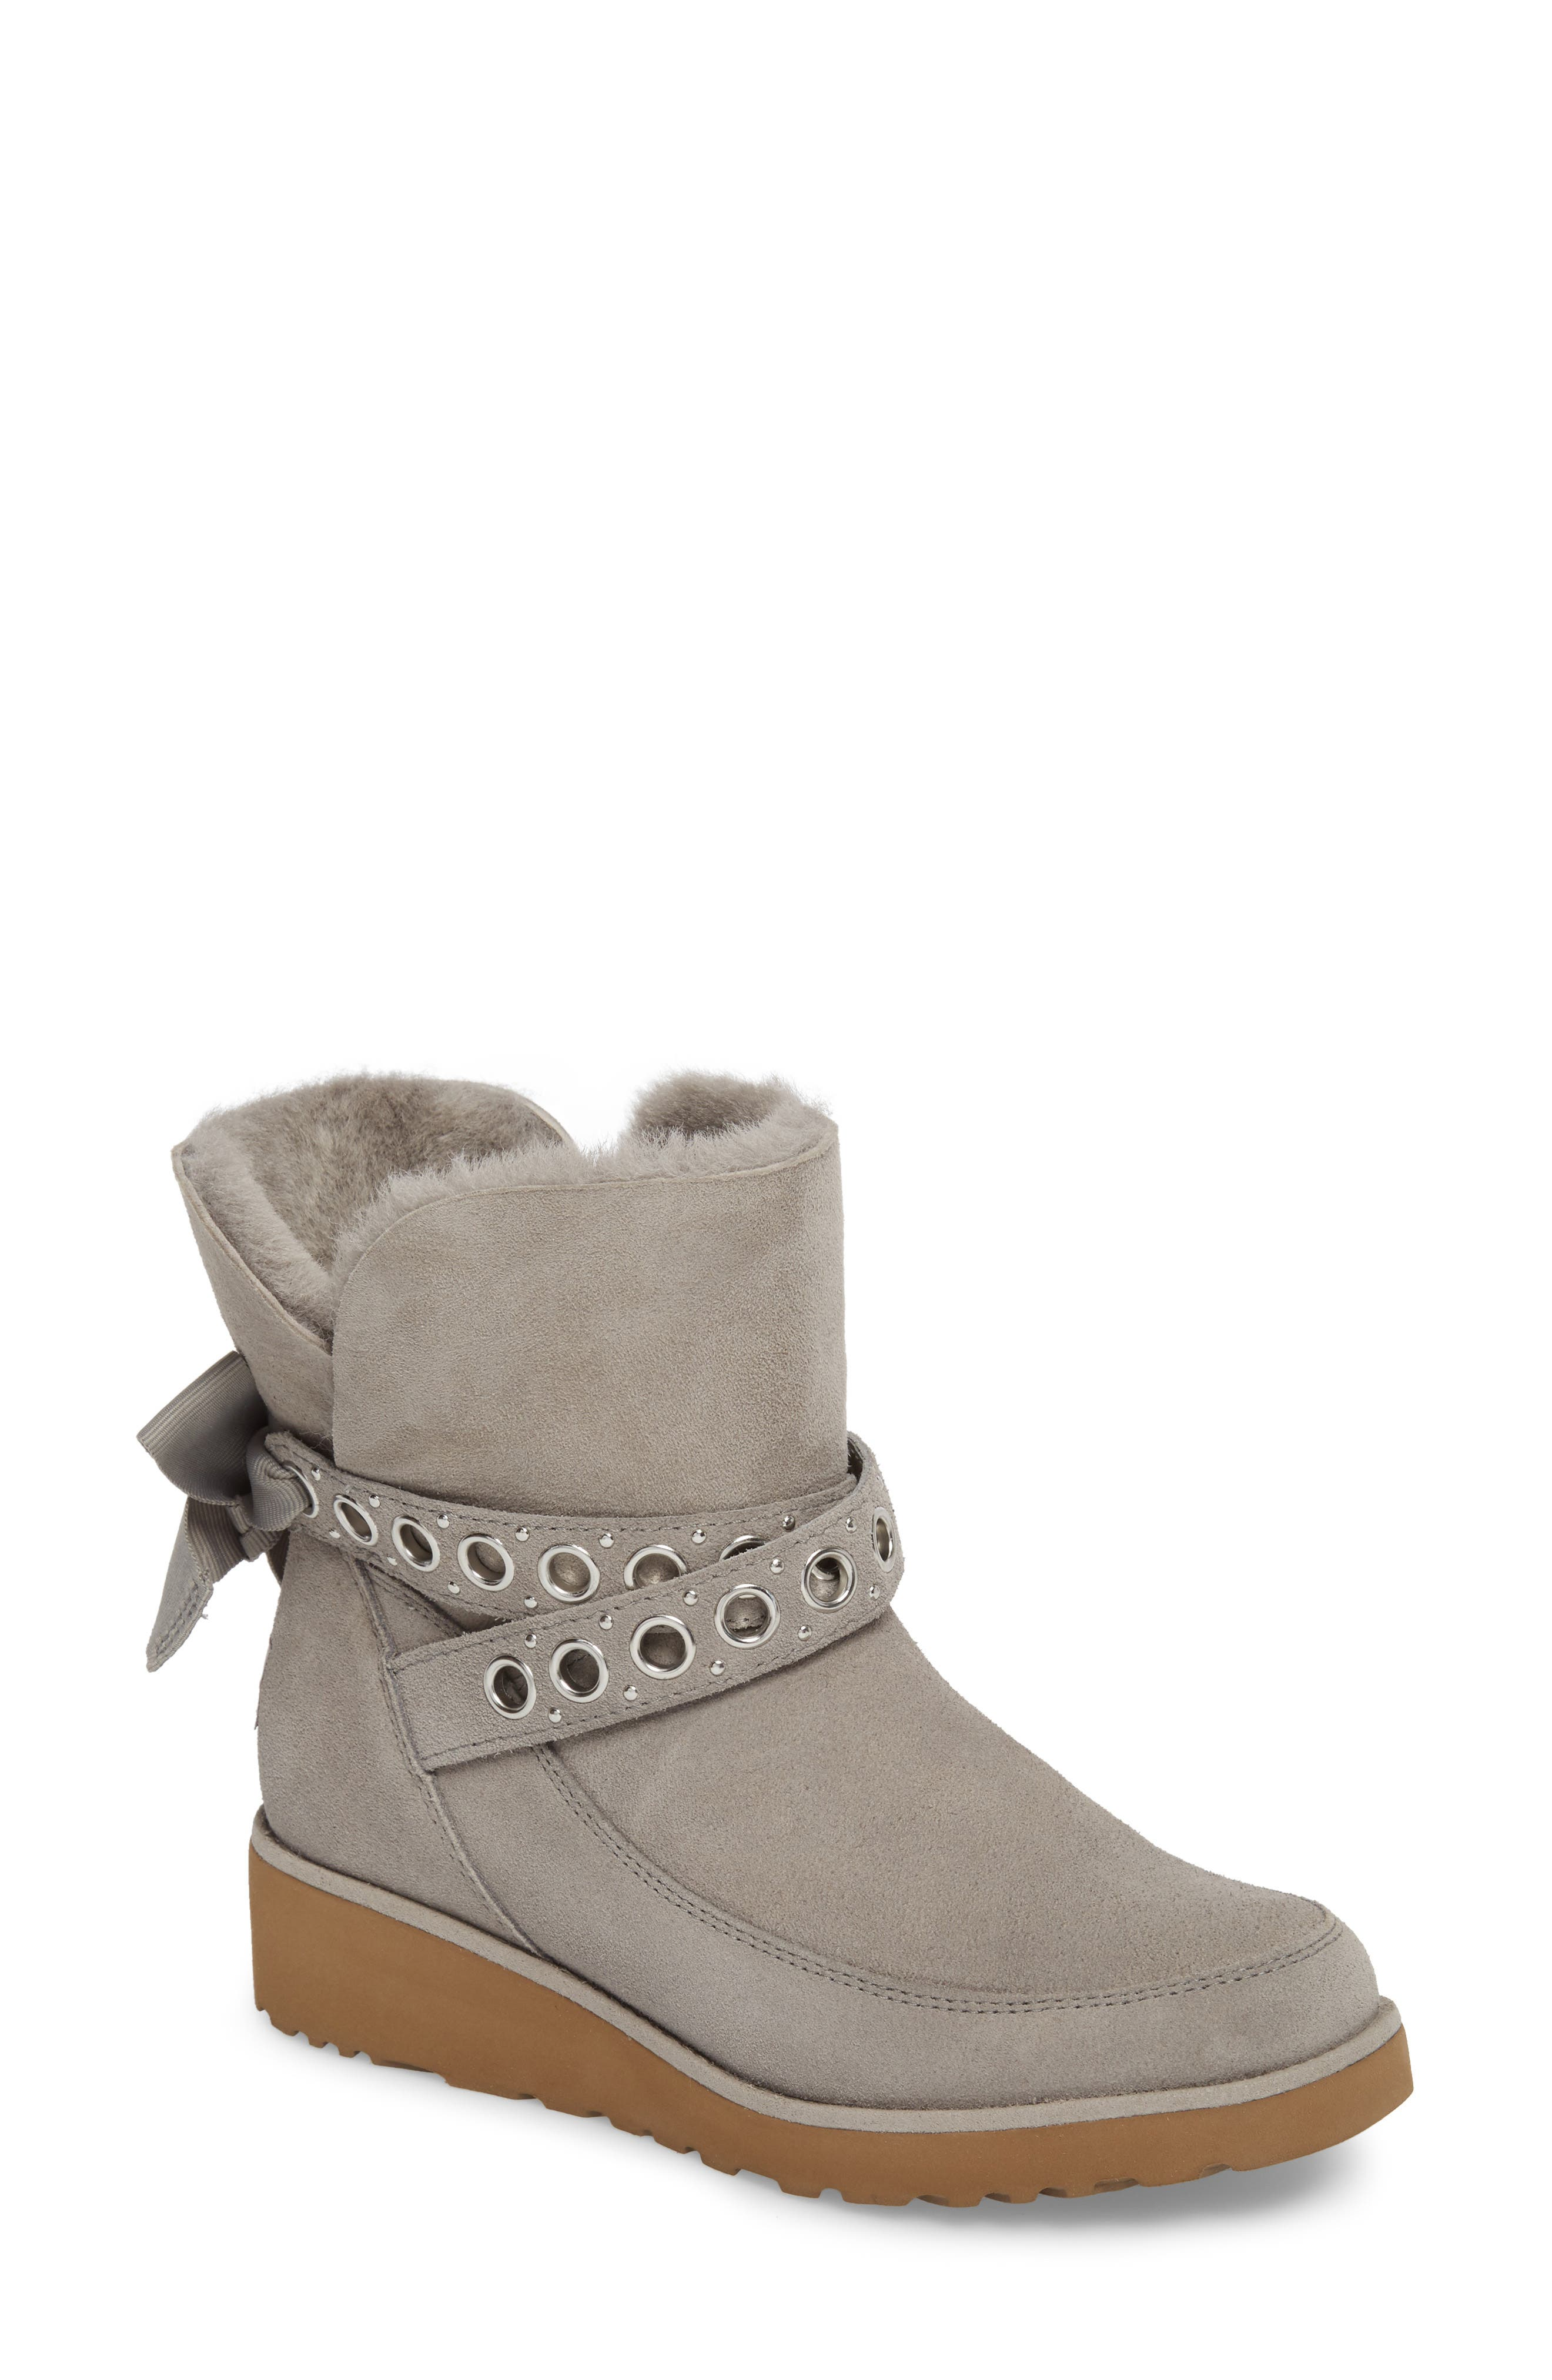 Alisia Grommet Bow Boot,                         Main,                         color, Seal Suede